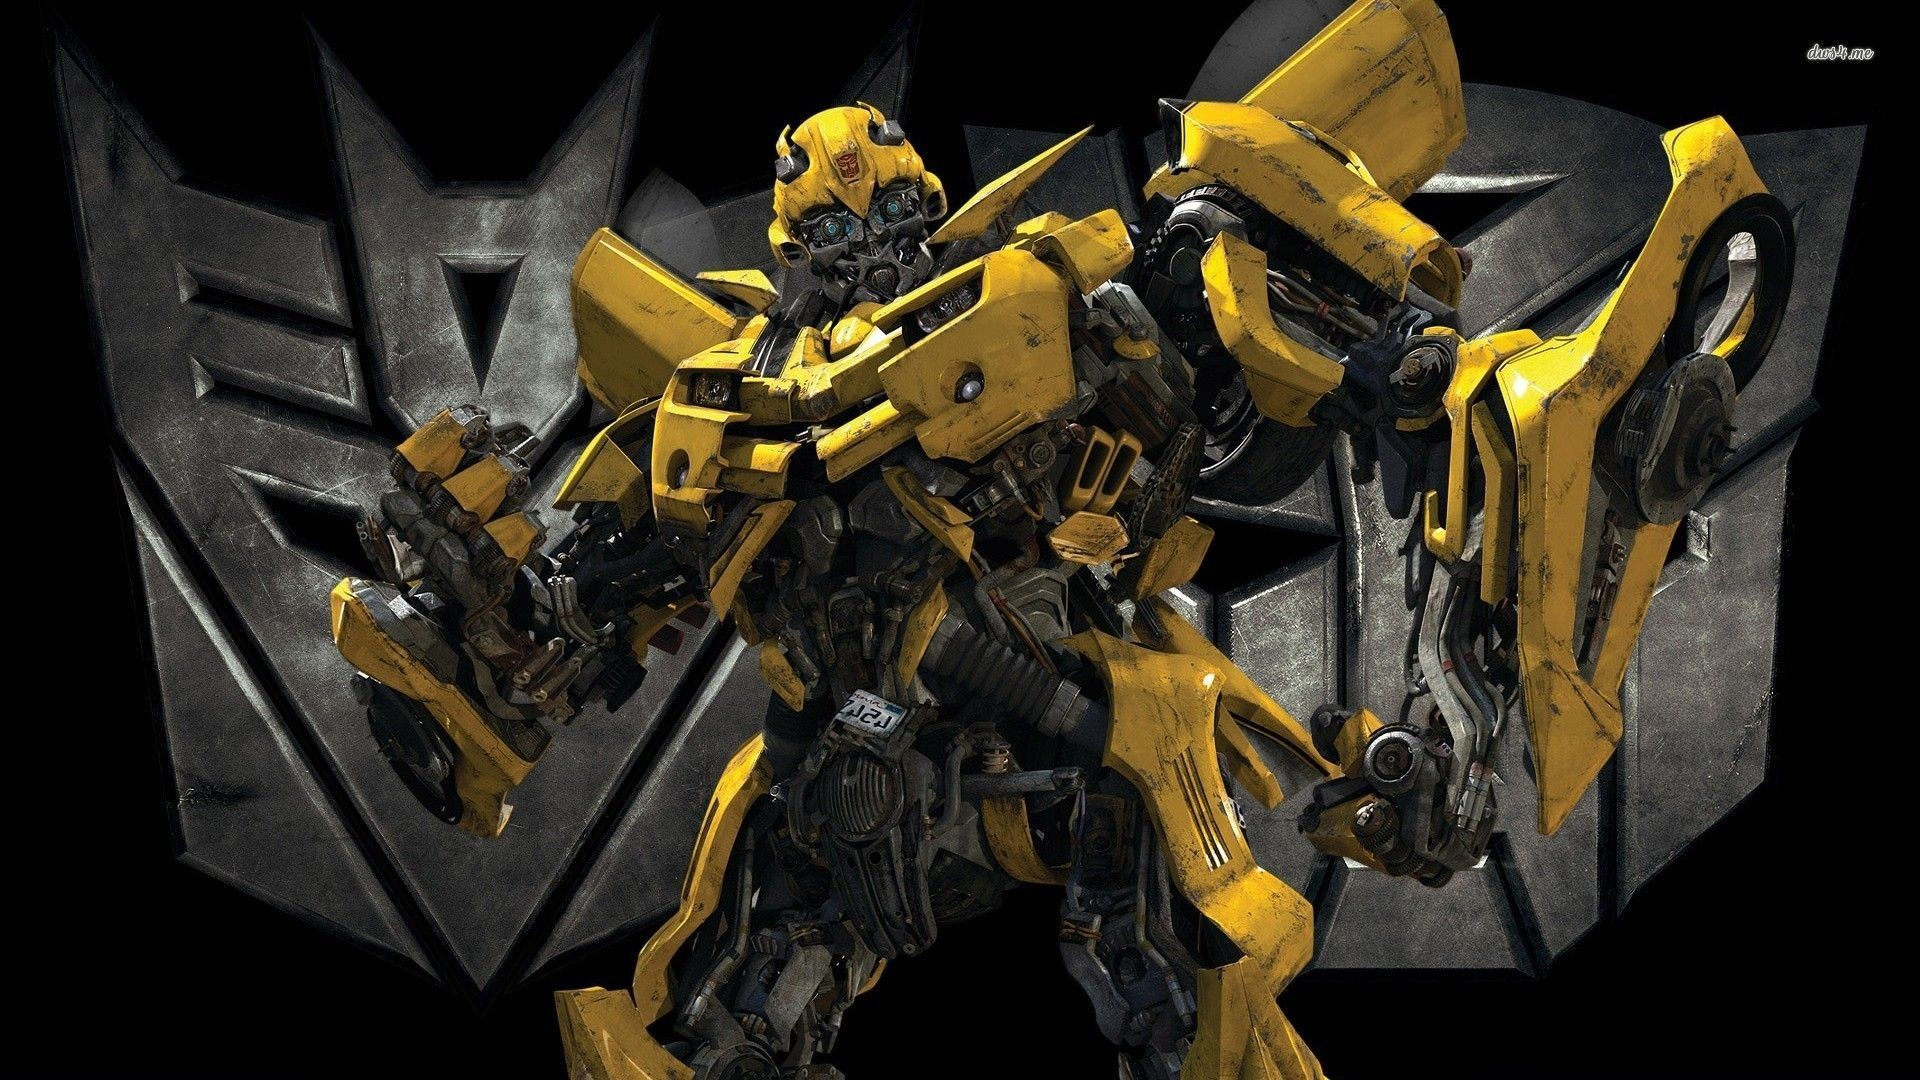 1920x1080 Transformers Prime Wallpapers HD Wallpaper 1920×1080 Transformers 3 HD  Wallpapers (46 Wallpapers)